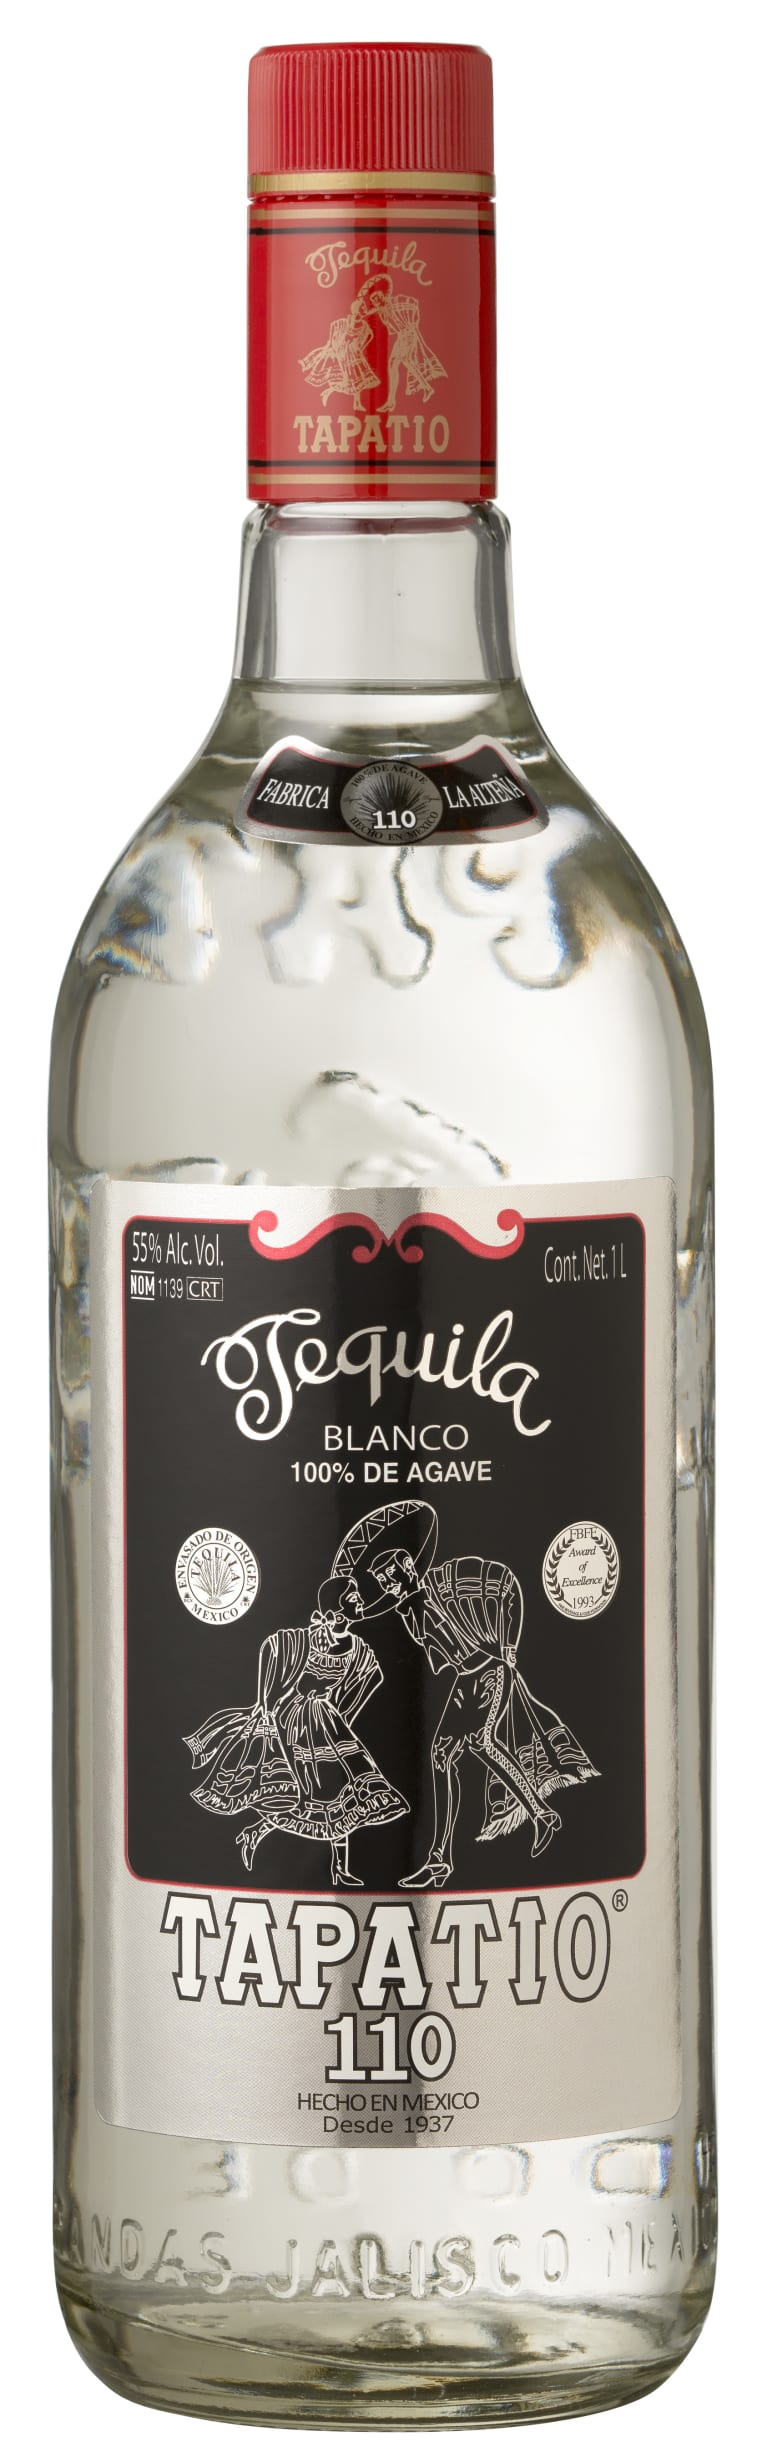 Tapatio Blanco Tequila (1 Liter)  Front Bottle Shot